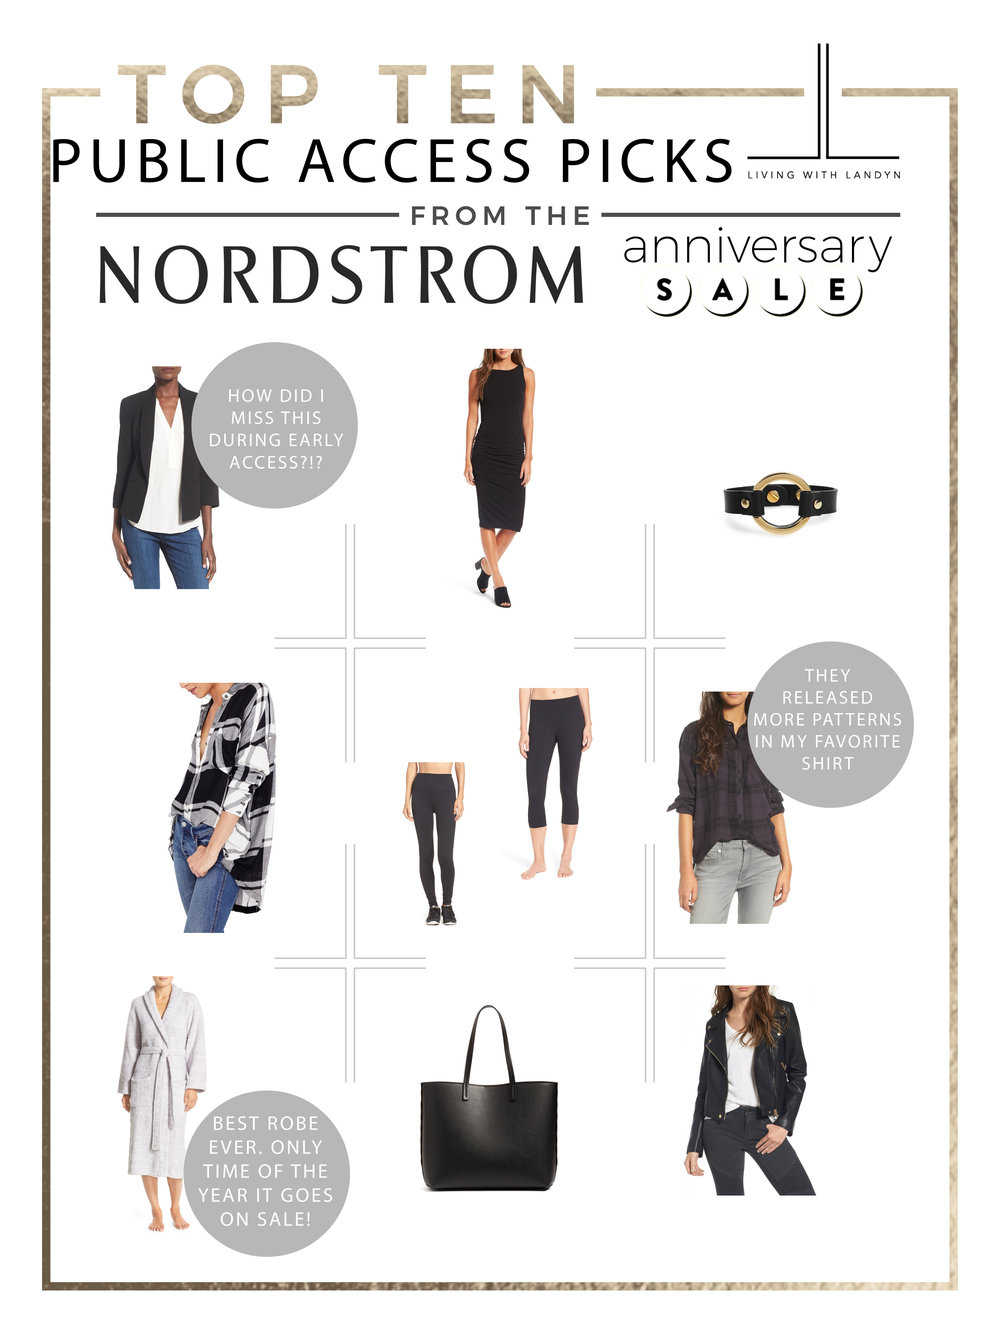 nordstrom anniversary sale public access top 10